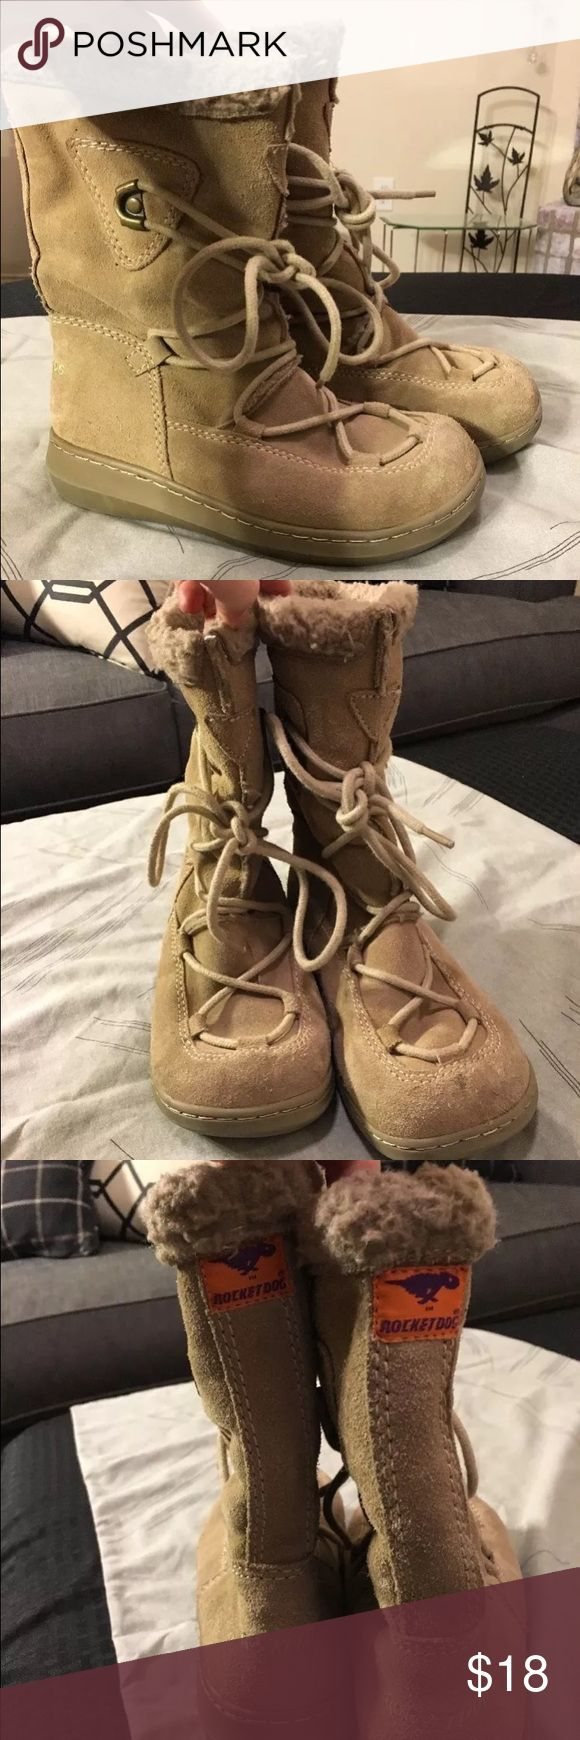 Rocket Dog Sueded Winter Boots Rocket Dog boots- warm & comfortable!  Size 7 Rocket Dog Shoes Winter & Rain Boots